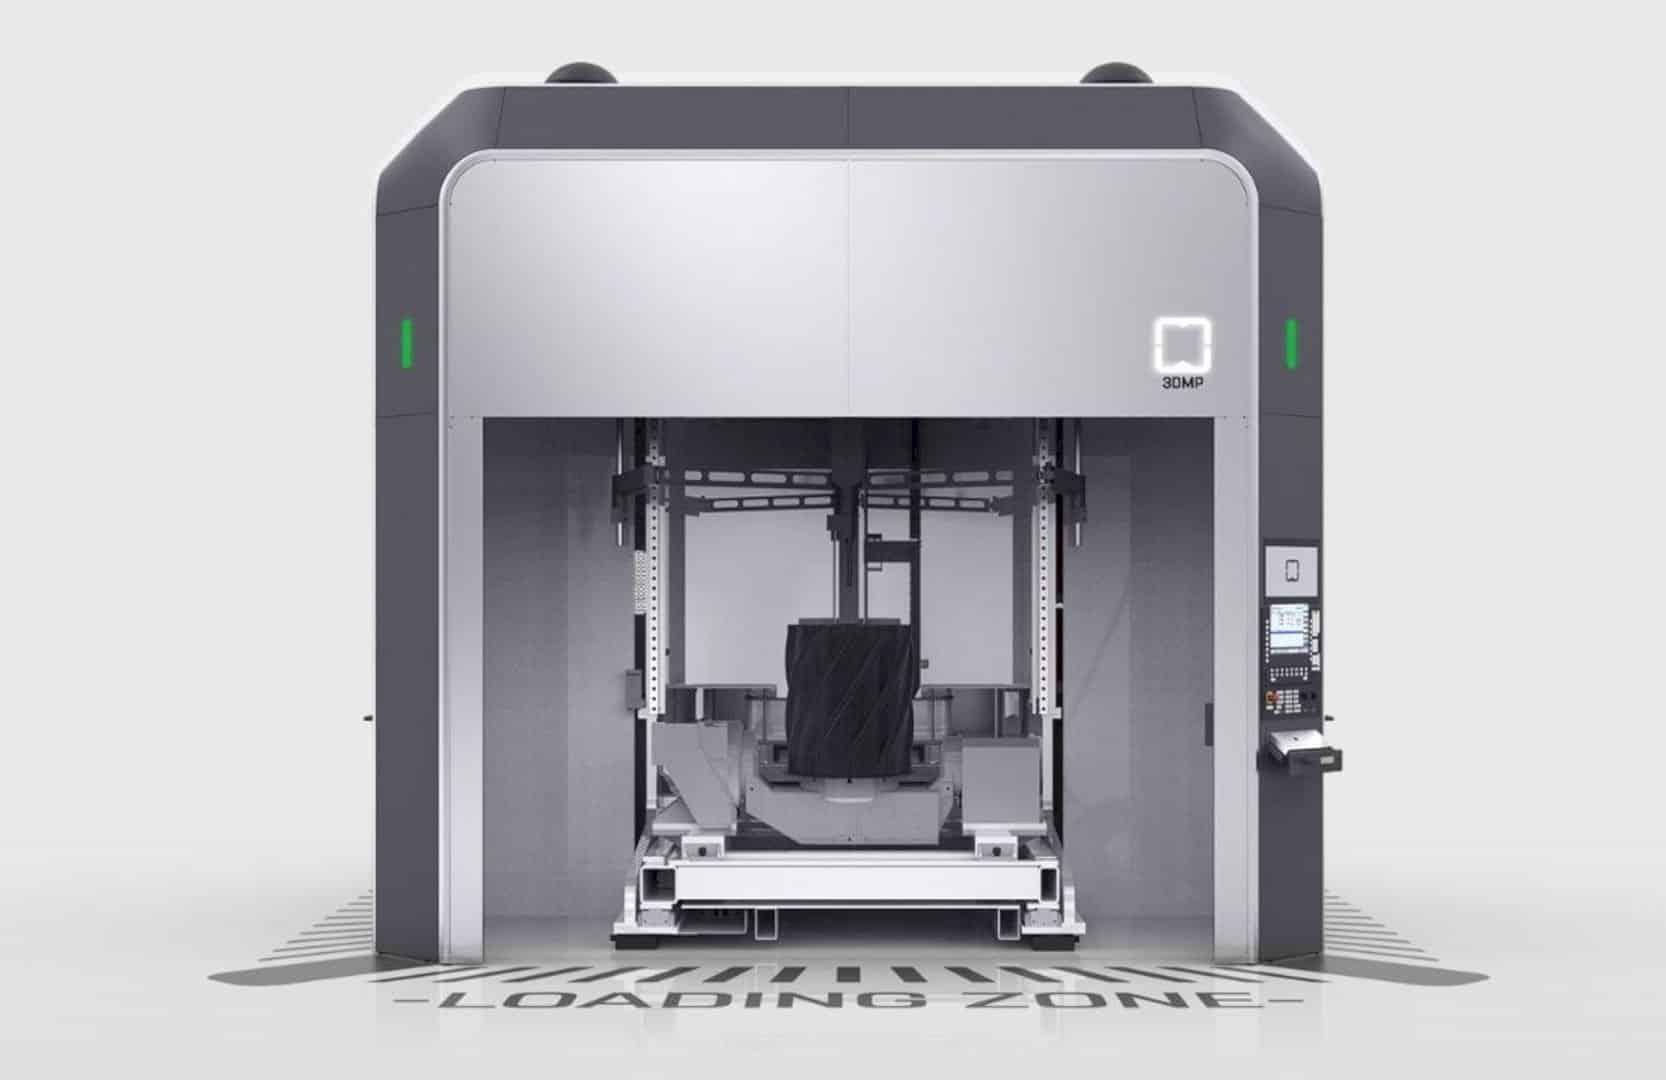 3DMP: The Best Three-Dimensional Mental Printing System Ever